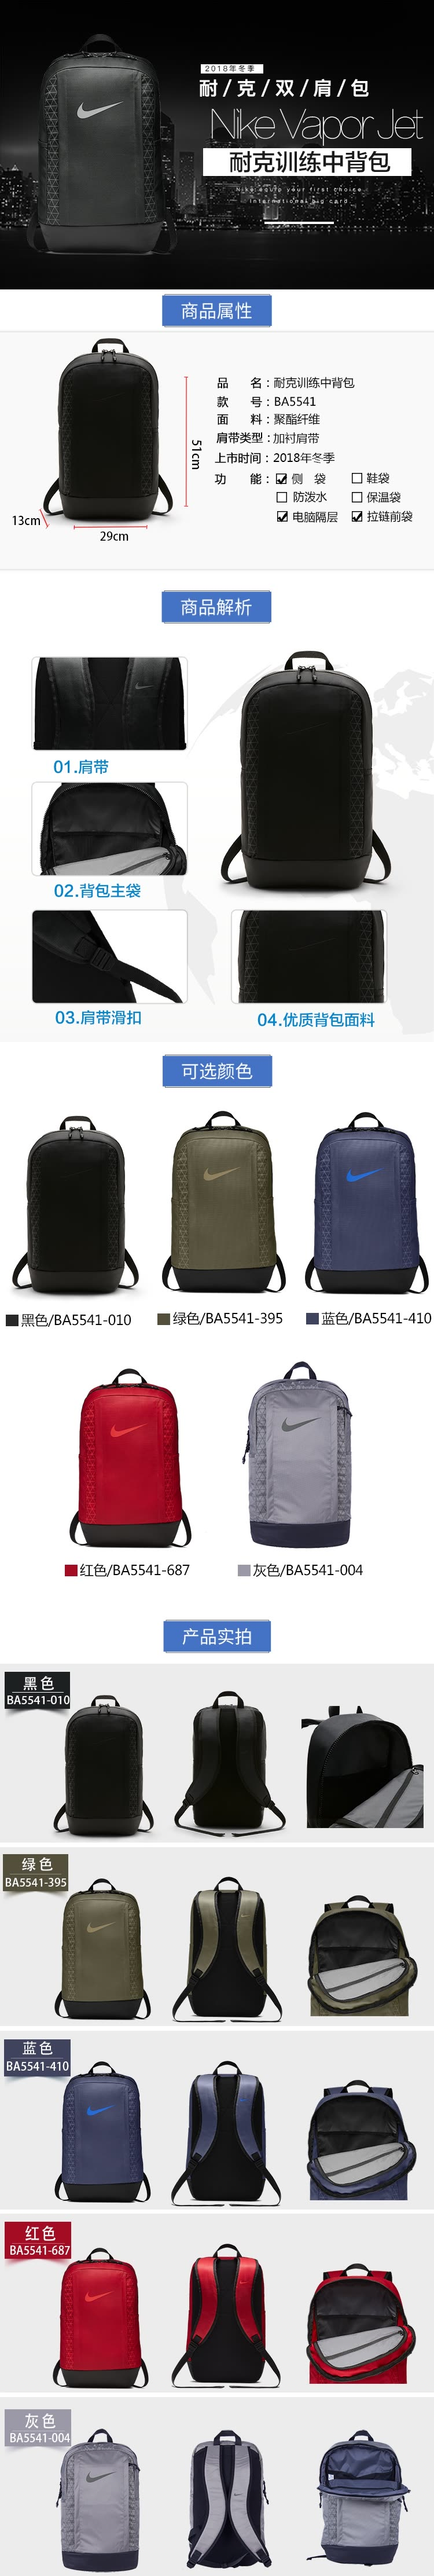 4b8c79debf0 Shop Nike bag sports bag backpack Vapor Power sports bag student bag ...